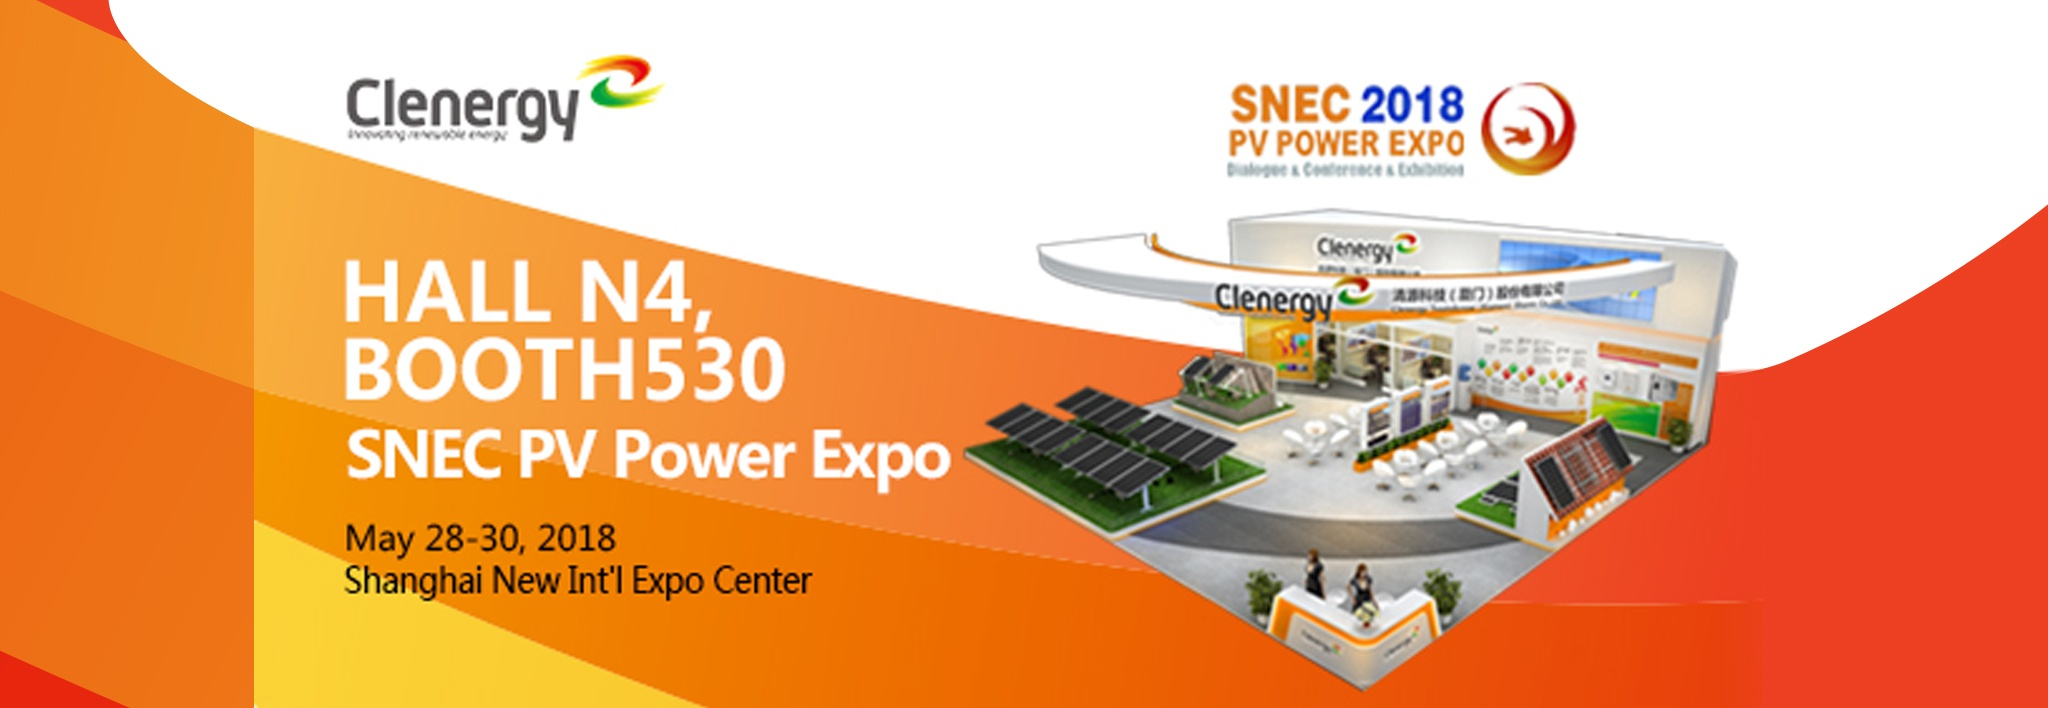 Clenergy at SNEC 2018 Invitation Letter